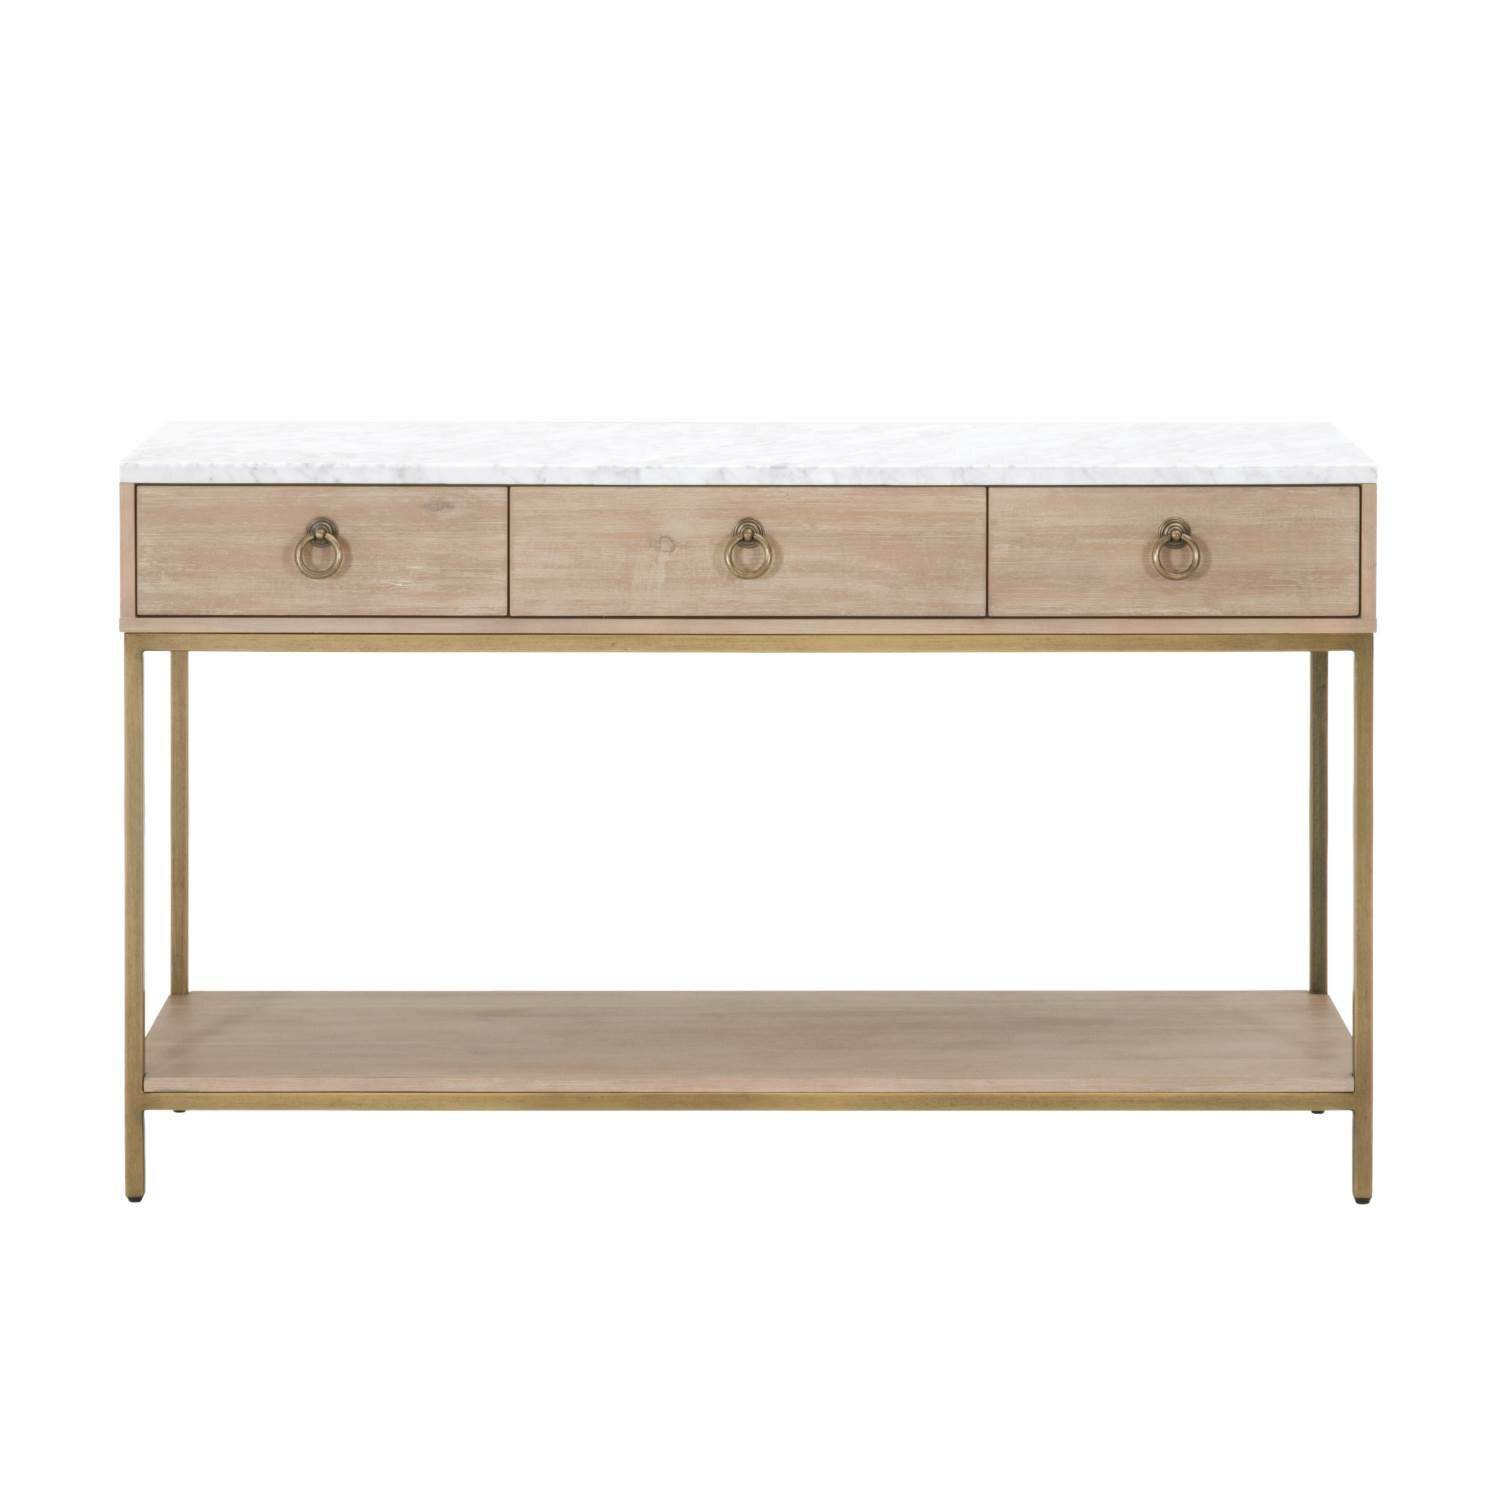 Everly Quinn Pottsville 3 Drawers And 1 Open Shelf Marble Top Entry